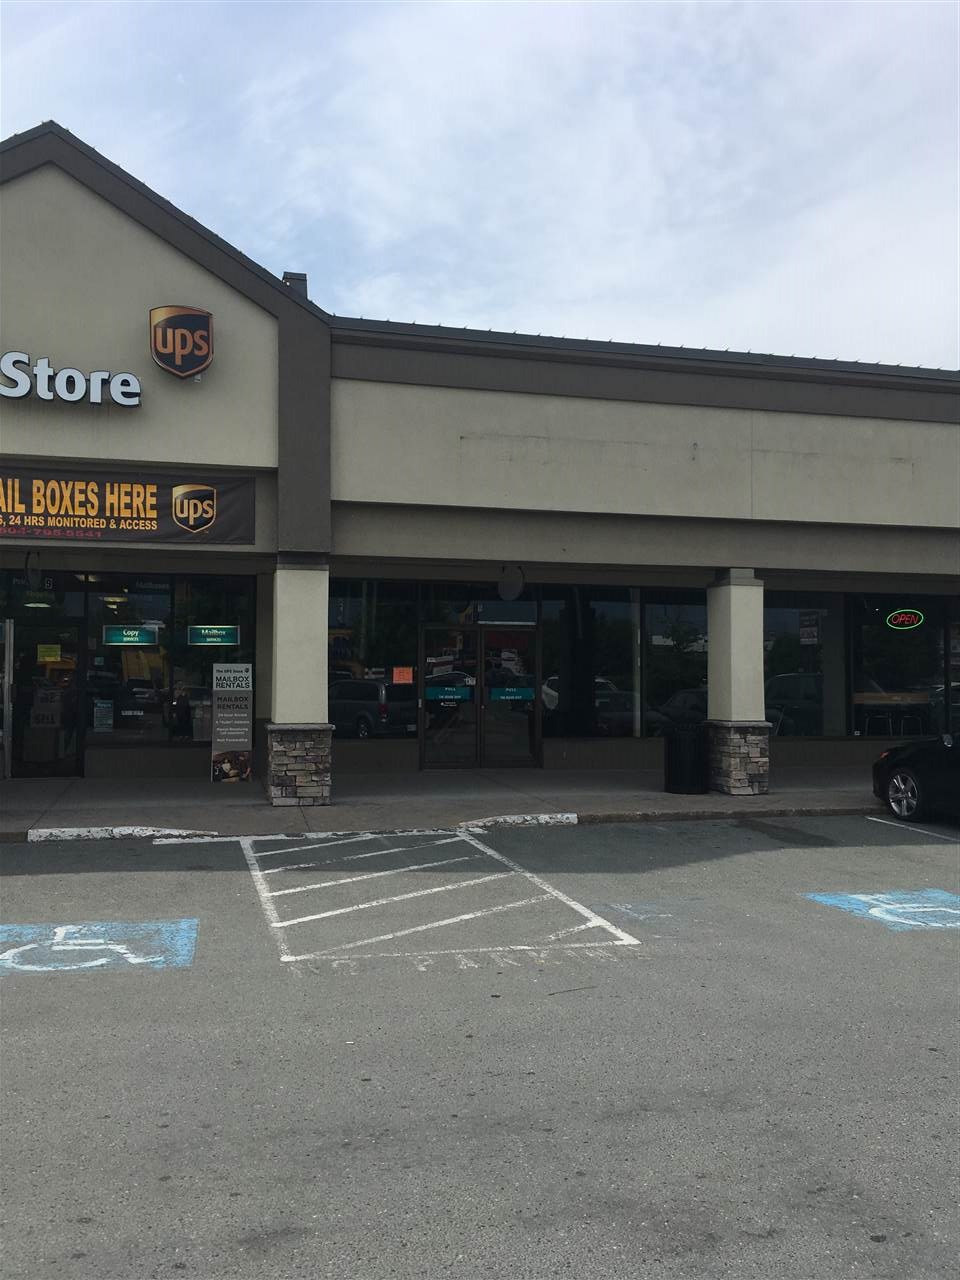 Southgate Shopping Centre. Join Shopper's Drug Mart, Pink Nails, Moon Hair Salon, Medical Clinic & more!! One of the busiest strip malls in Chilliwack. Lots of foot traffic. 2248 sqft retail/office ground level.